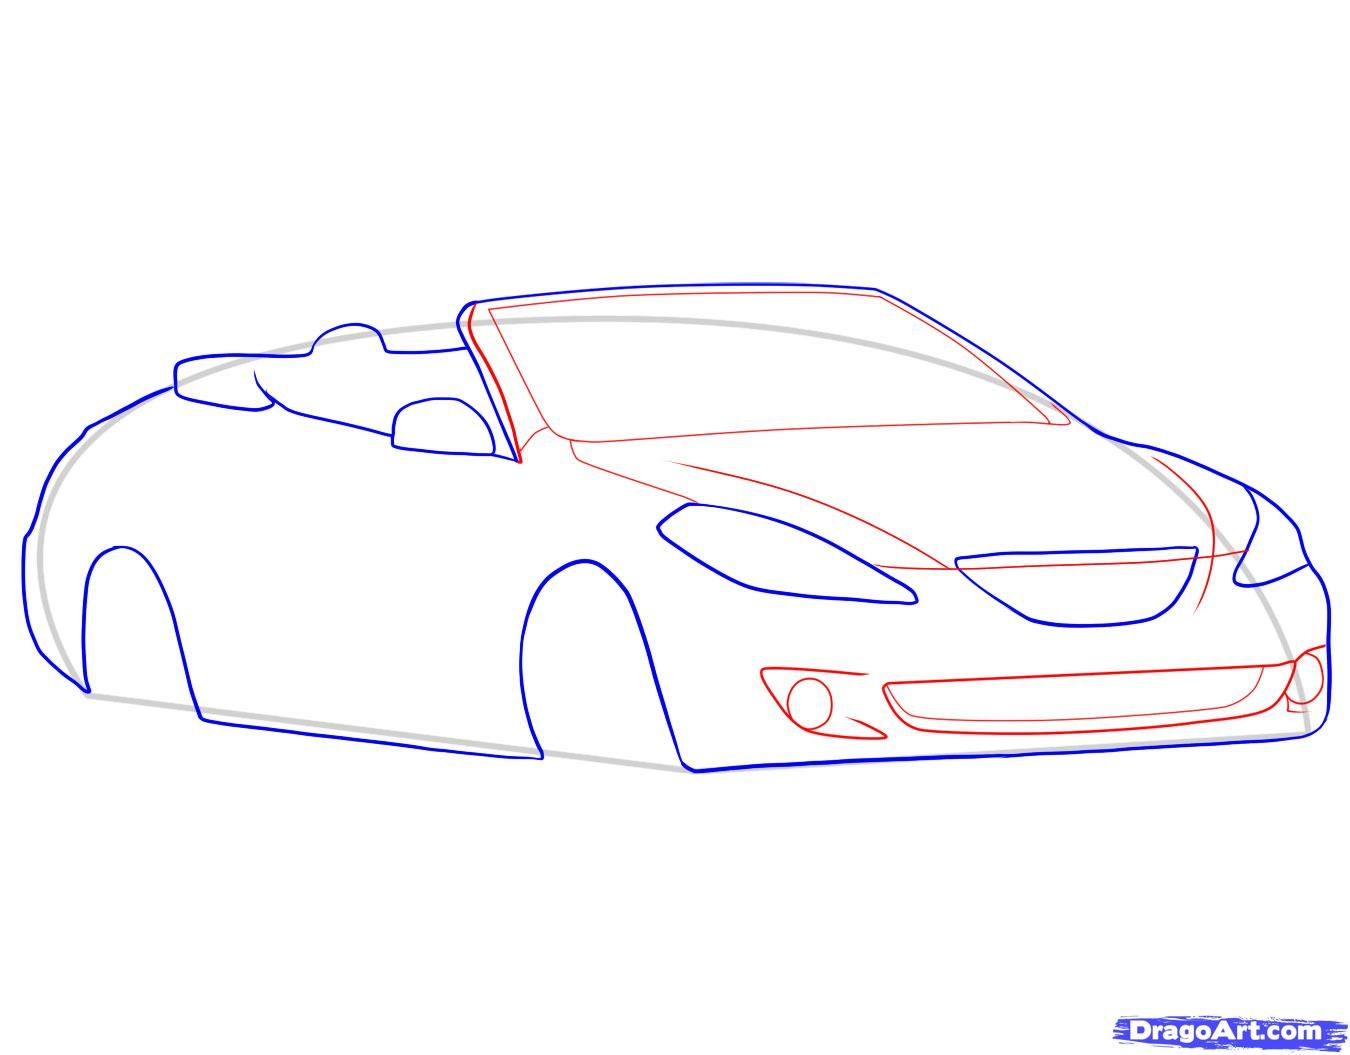 How to draw the Camaro car step by step 6